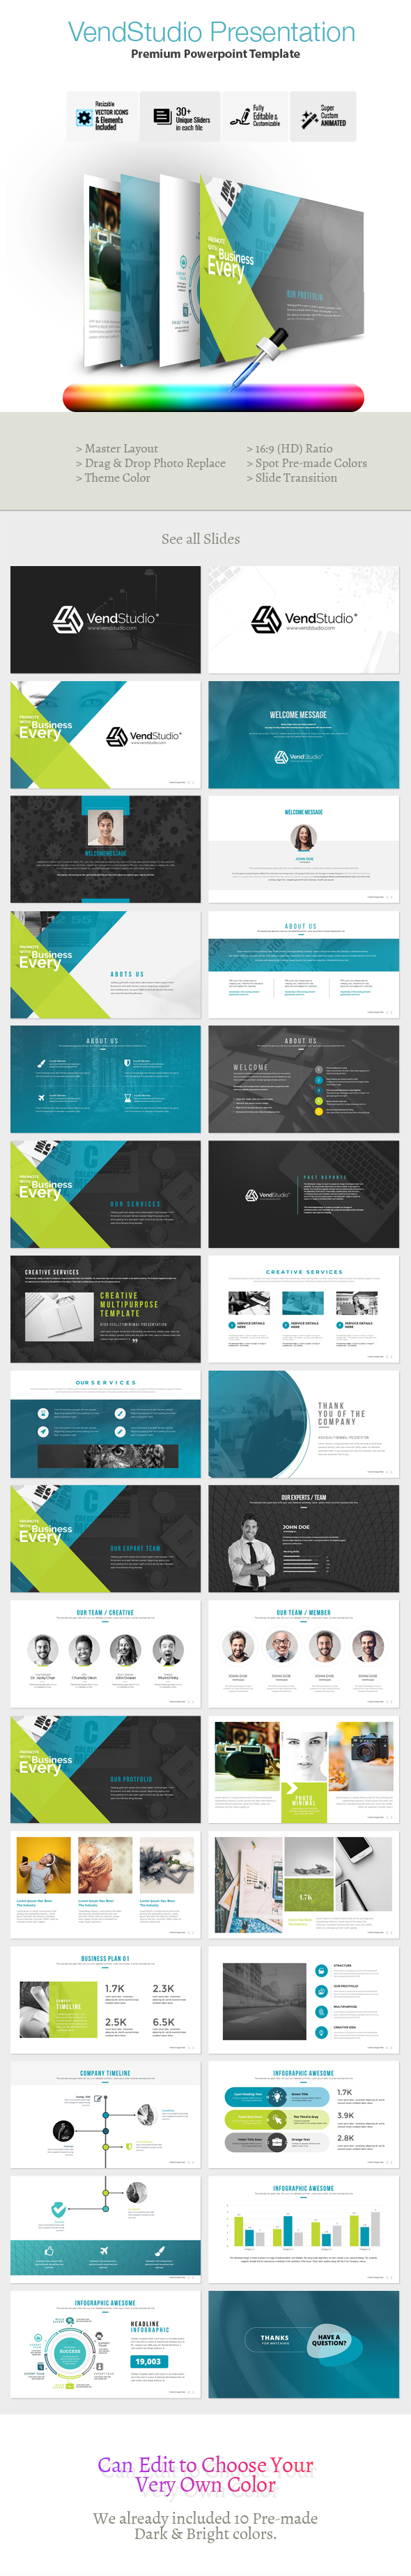 VendStudio Powerpoint Template - Business PowerPoint Templates